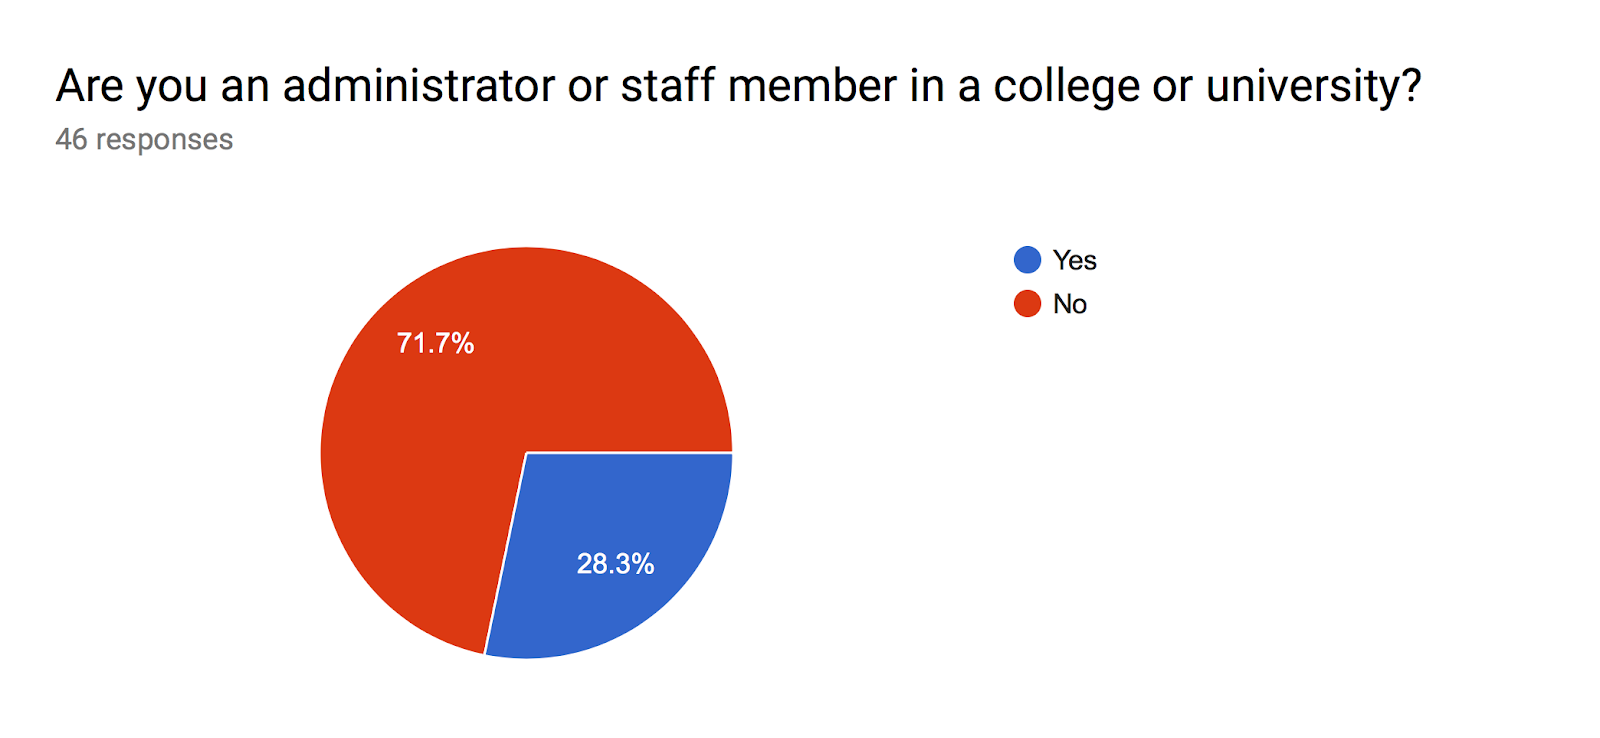 Forms response chart. Question title: Are you an administrator or staff member in a college or university?. Number of responses: 46 responses.